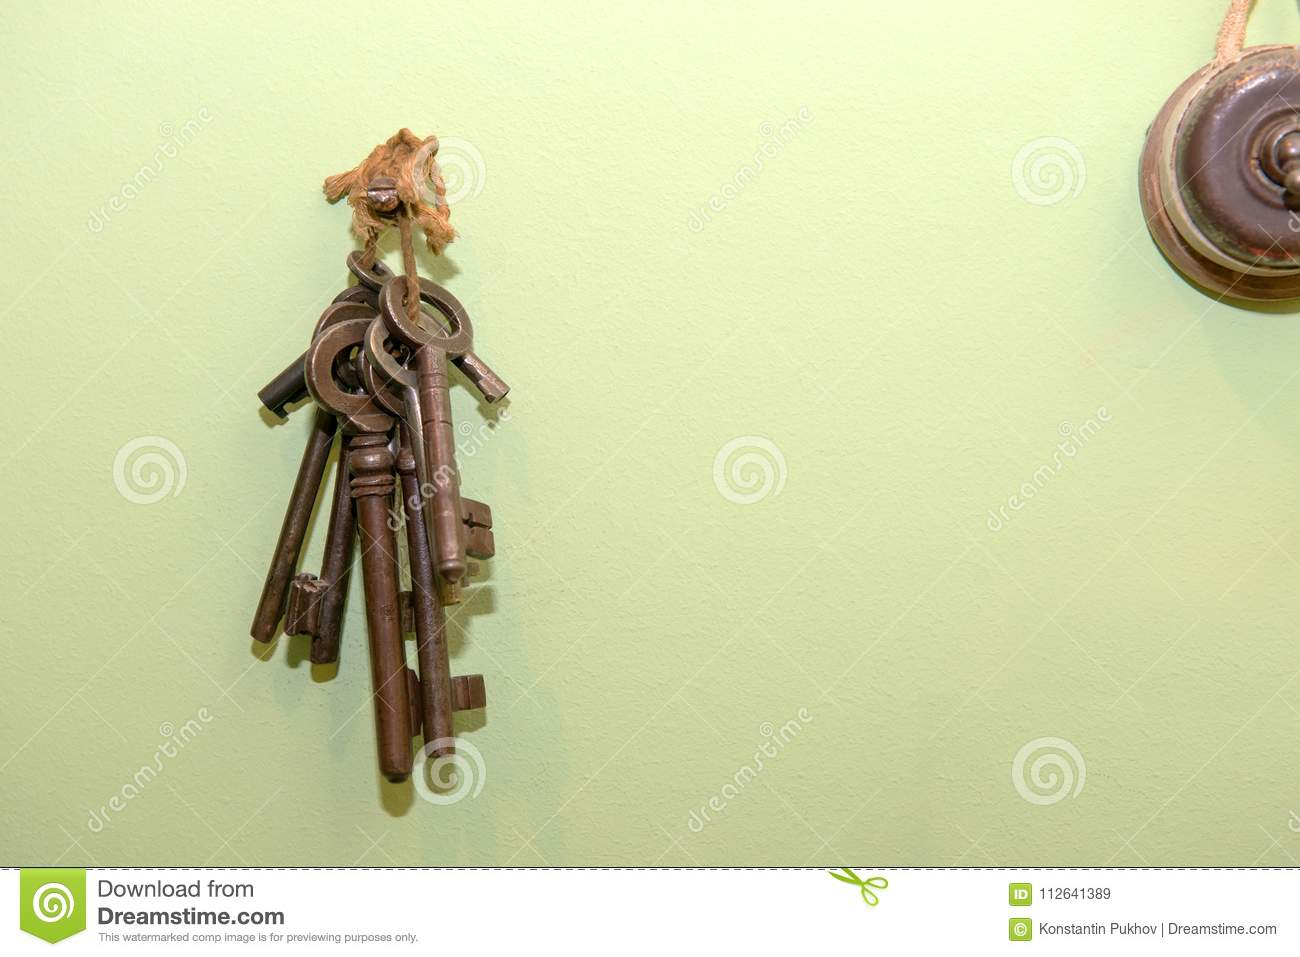 Some vintage keys stock image. Image of brown, access - 112641389